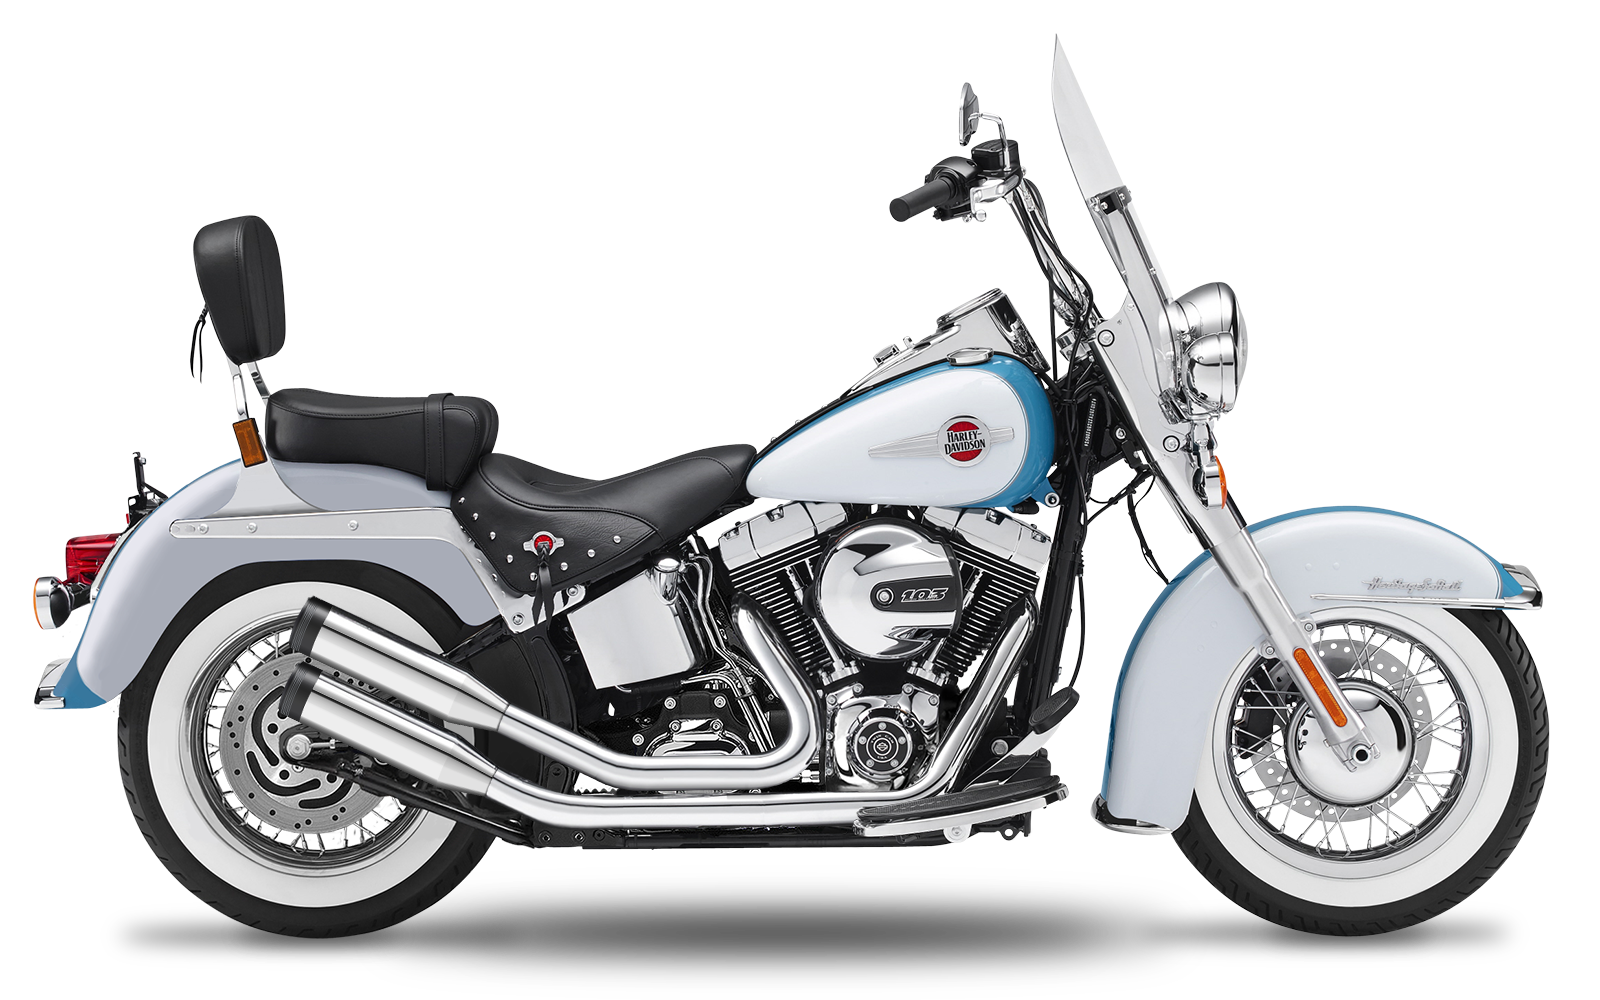 Softail - Heritage - TC88 - 2000-2006 - Complete systems adjustable